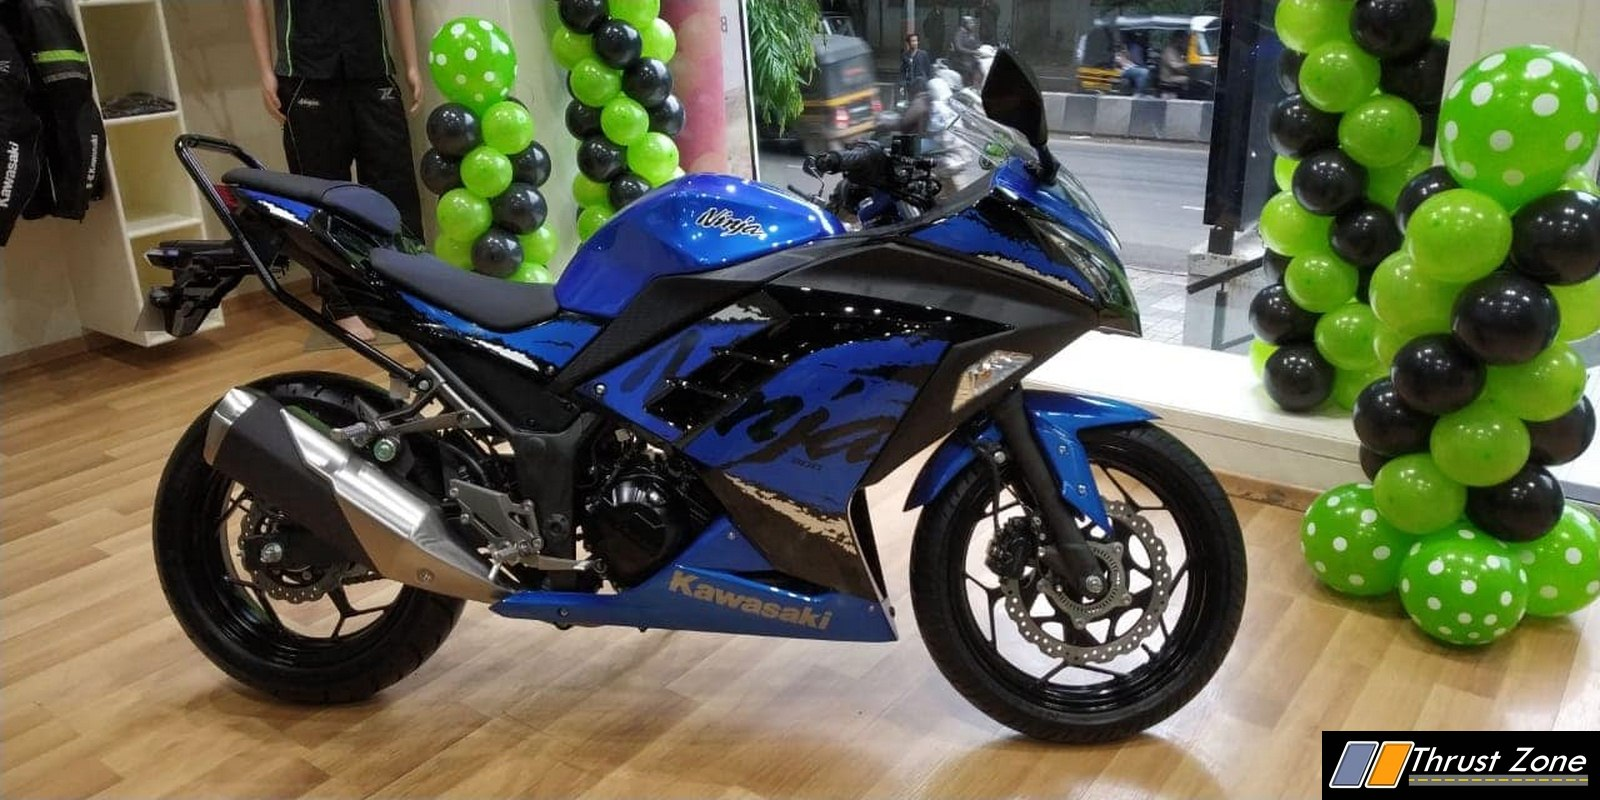 2018 Kawasaki Ninja 300 India Launch Done With Abs And New Colors